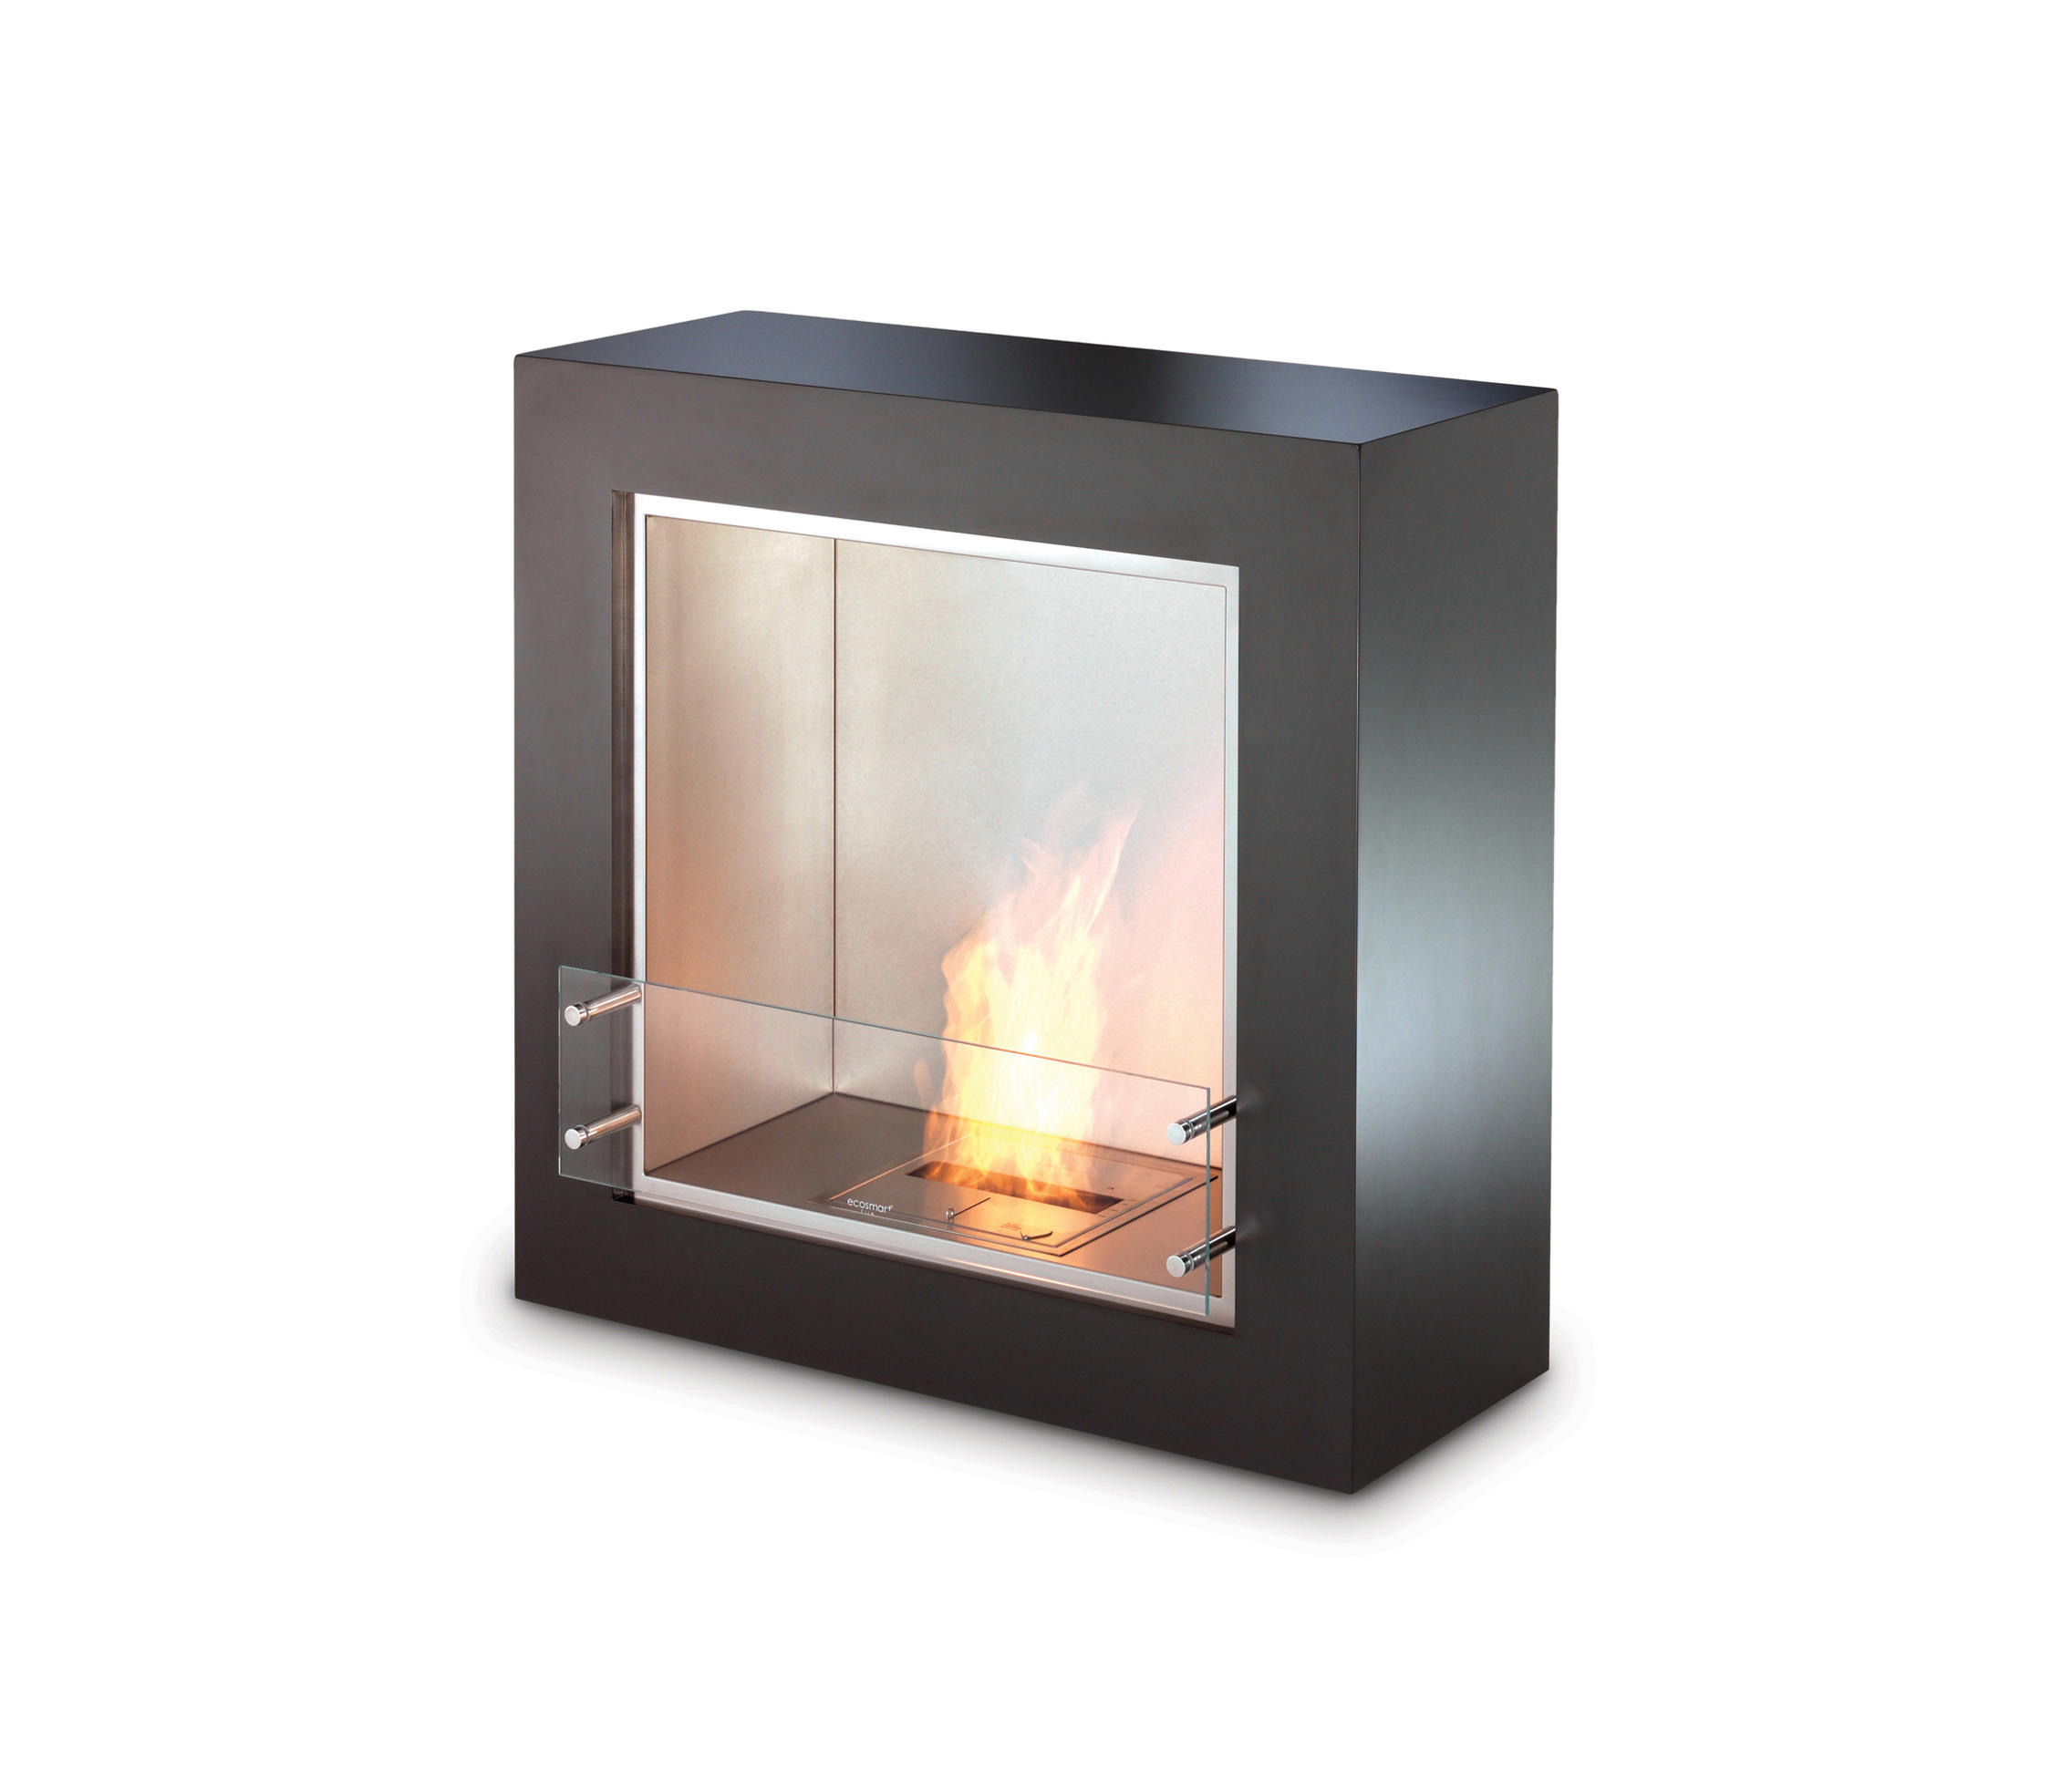 products with h valcourt accessories and oven digital fireplace mass options fireplaces en